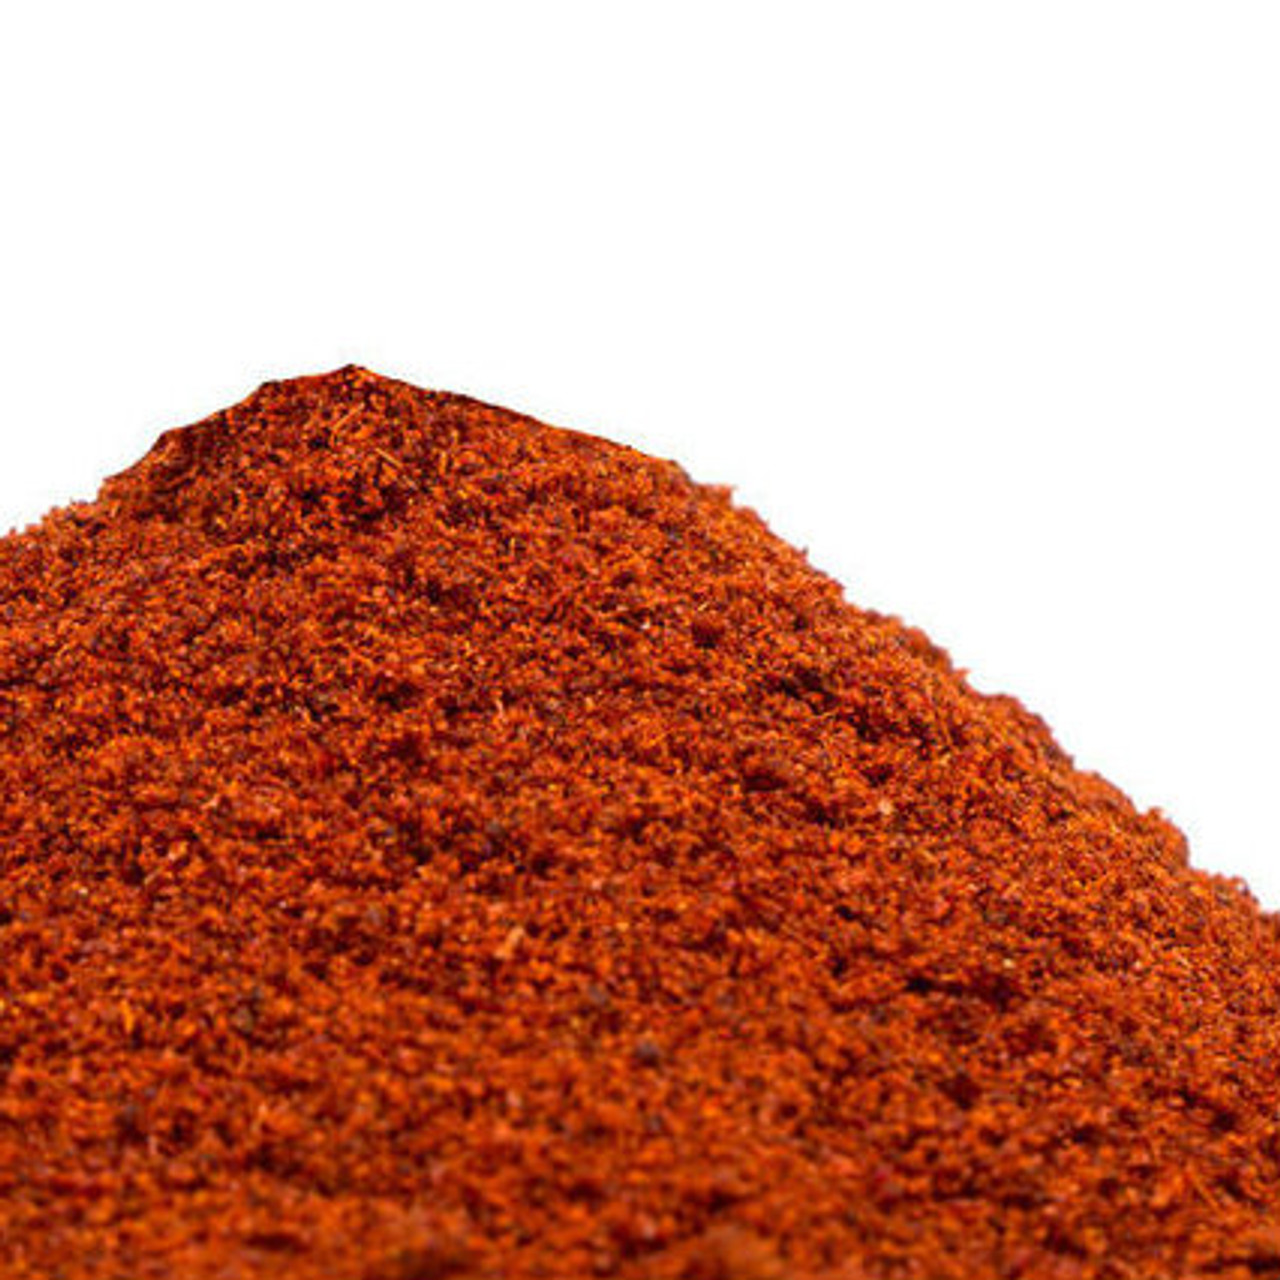 Our Smoked Paprika comes from Spain, where mildly spicy red peppers are dried in an oak wood-burning oven and then slowly ground to preserve flavor. It is rich orangey-red in color and tastes smoky and mild with a touch of spice. Lends rich red color and subtle smokiness to cream-based sauces and soups. A delicious complement to poultry, pork and shrimp. Add to stews featuring beans, lentils, sausage, chicken, shrimp or other seafood for a deep, complex flavor component.